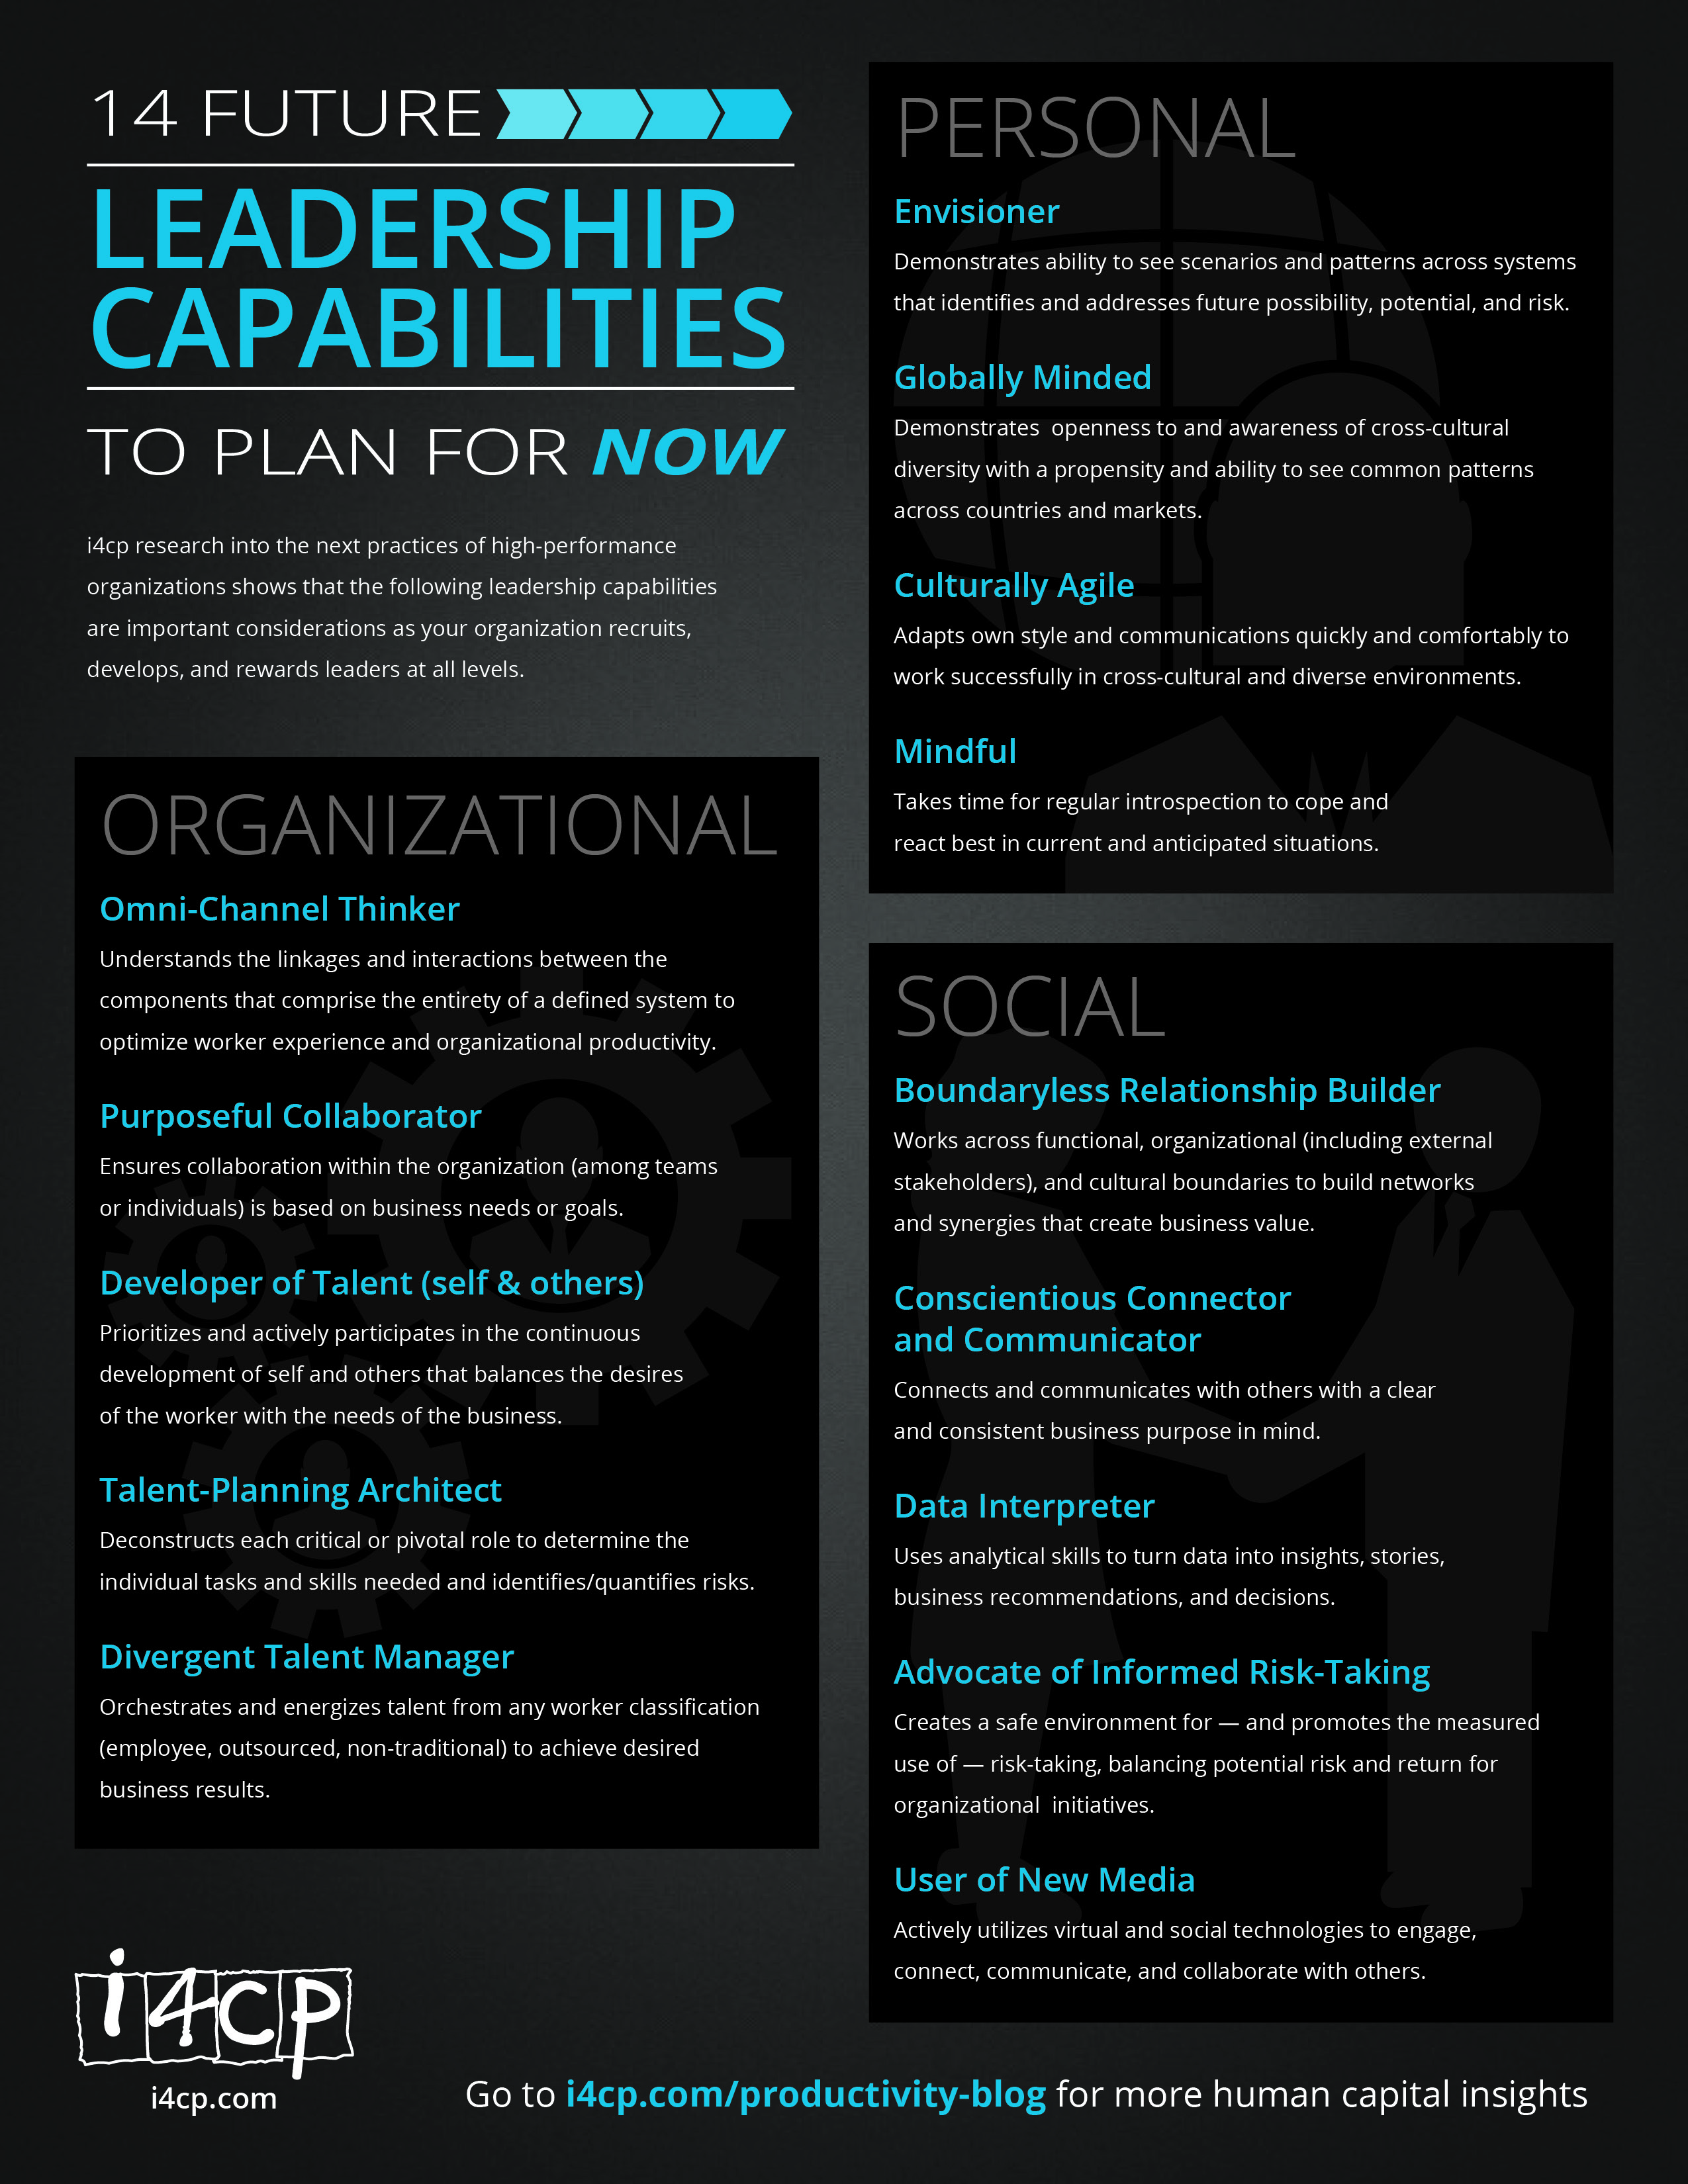 Future Leadership Capabilities